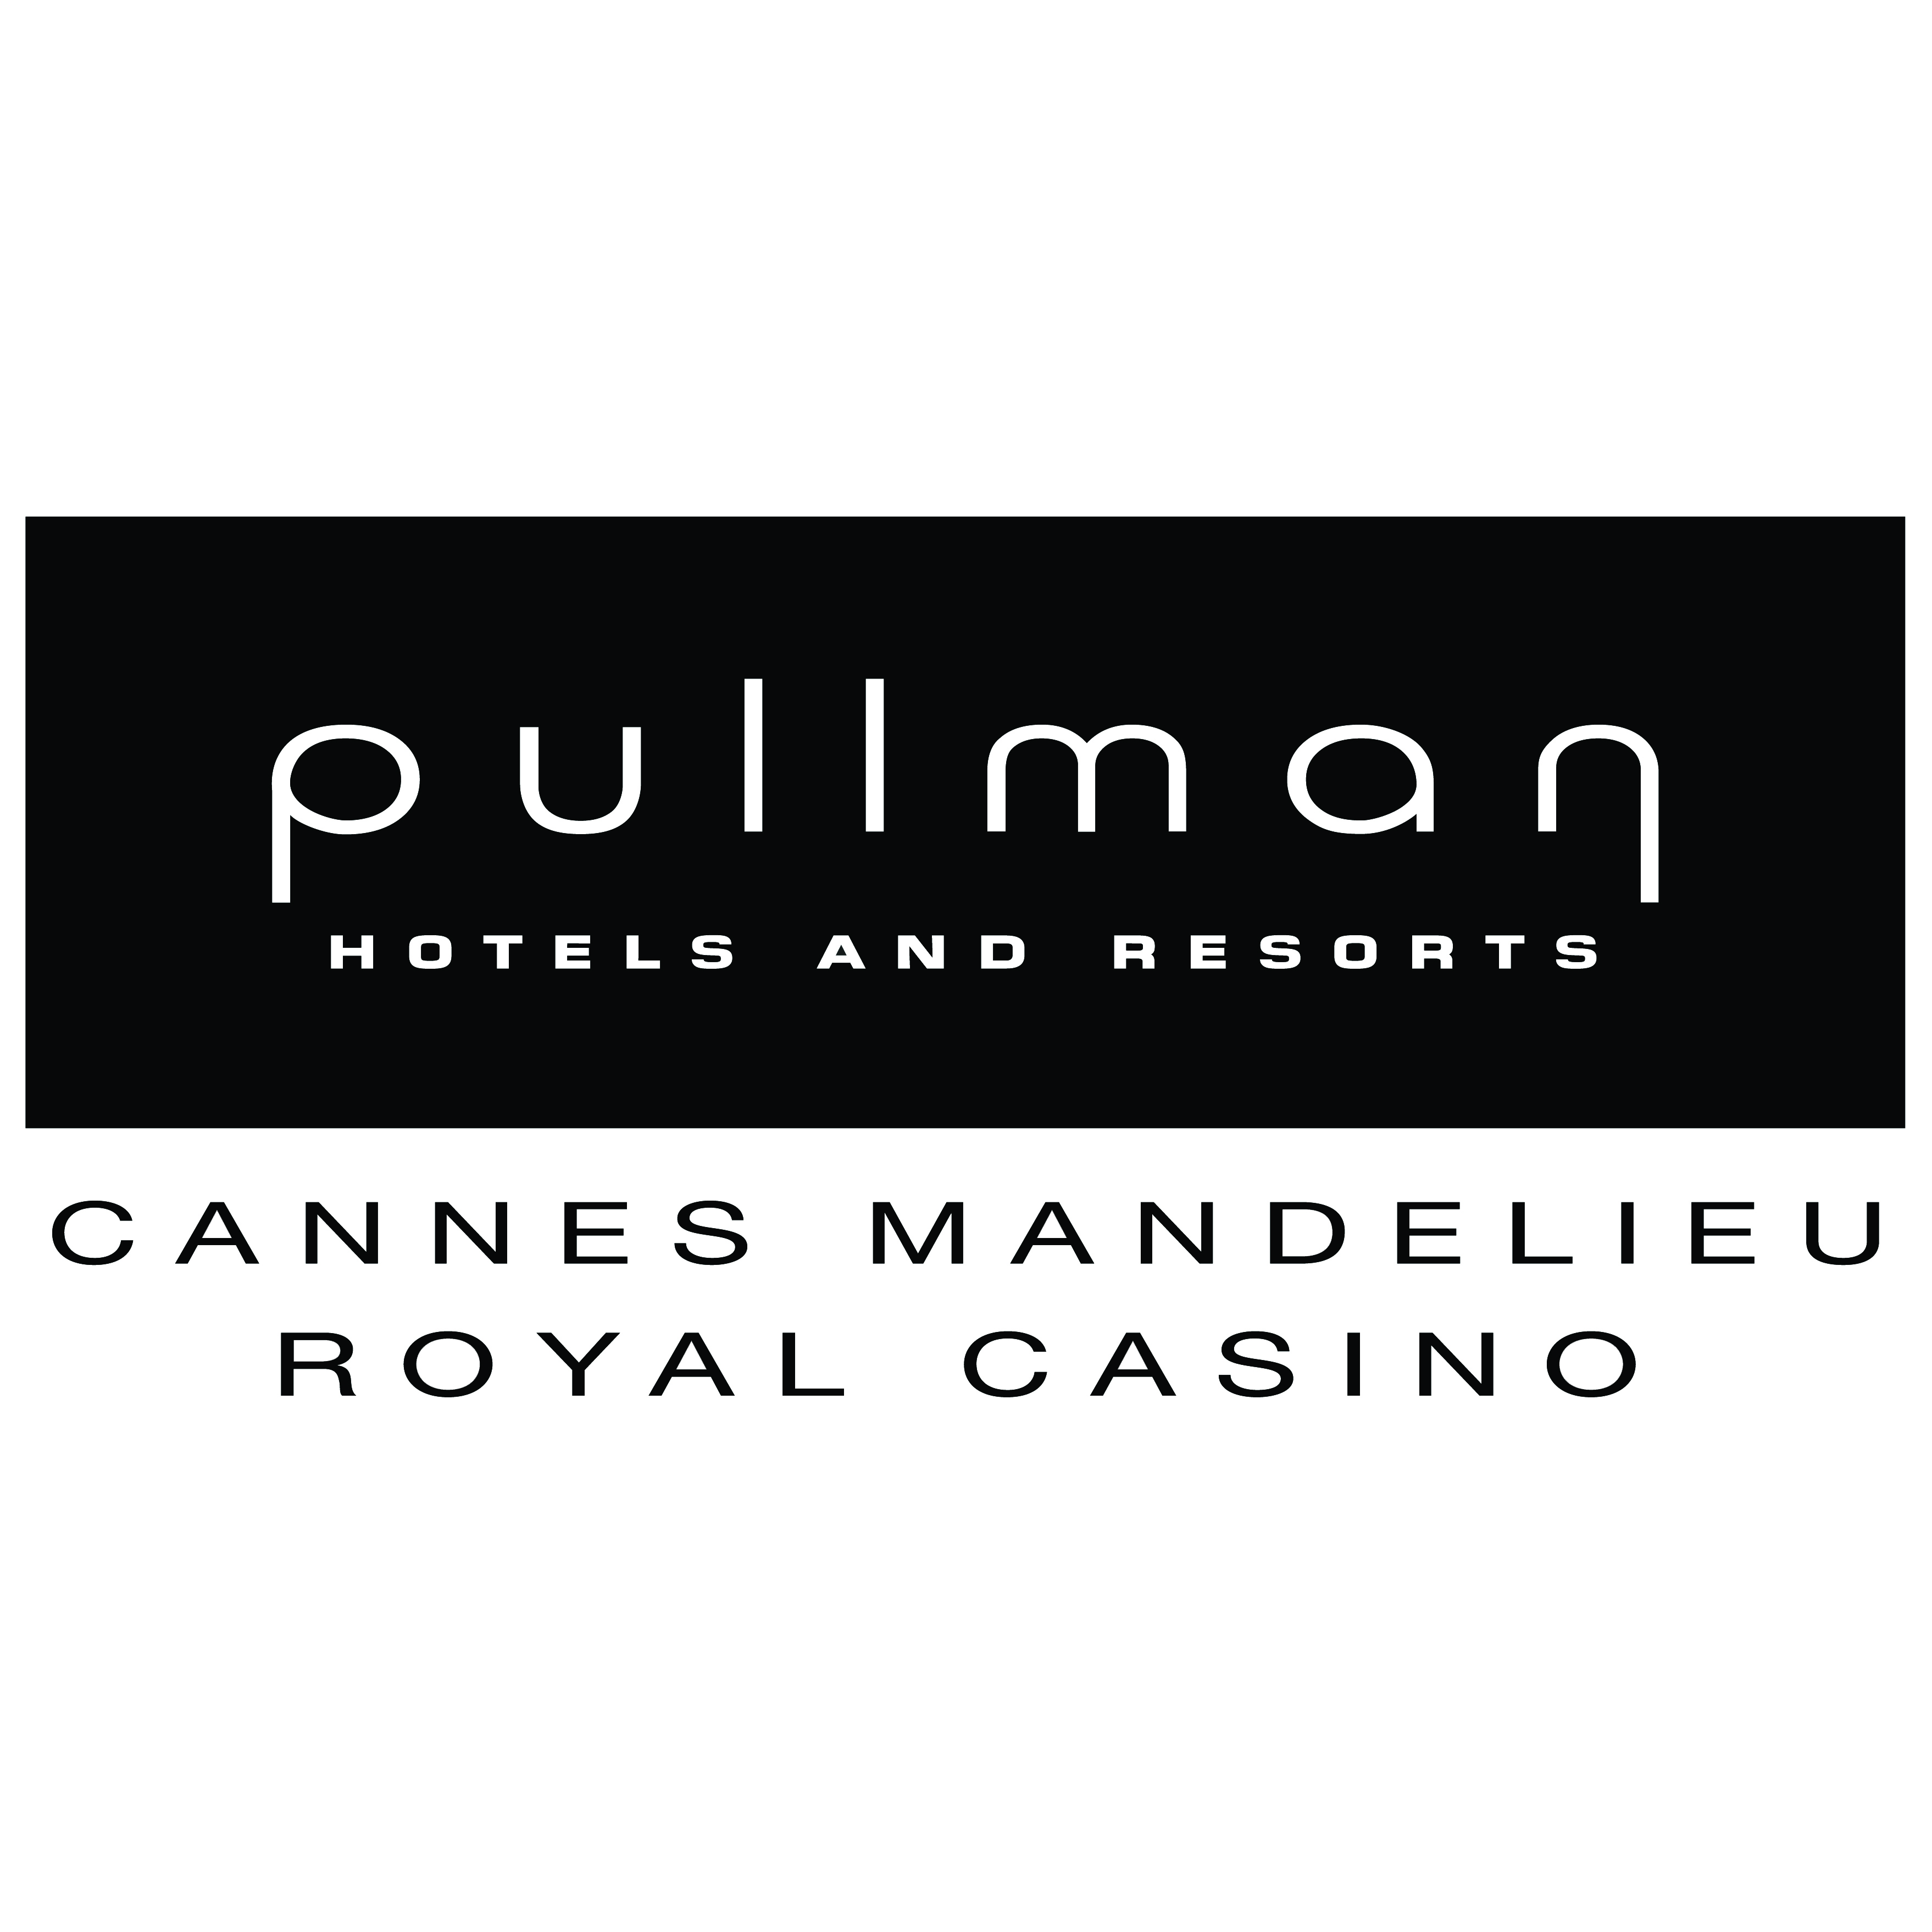 Pullman Cannes Mandelieu Royal Casino